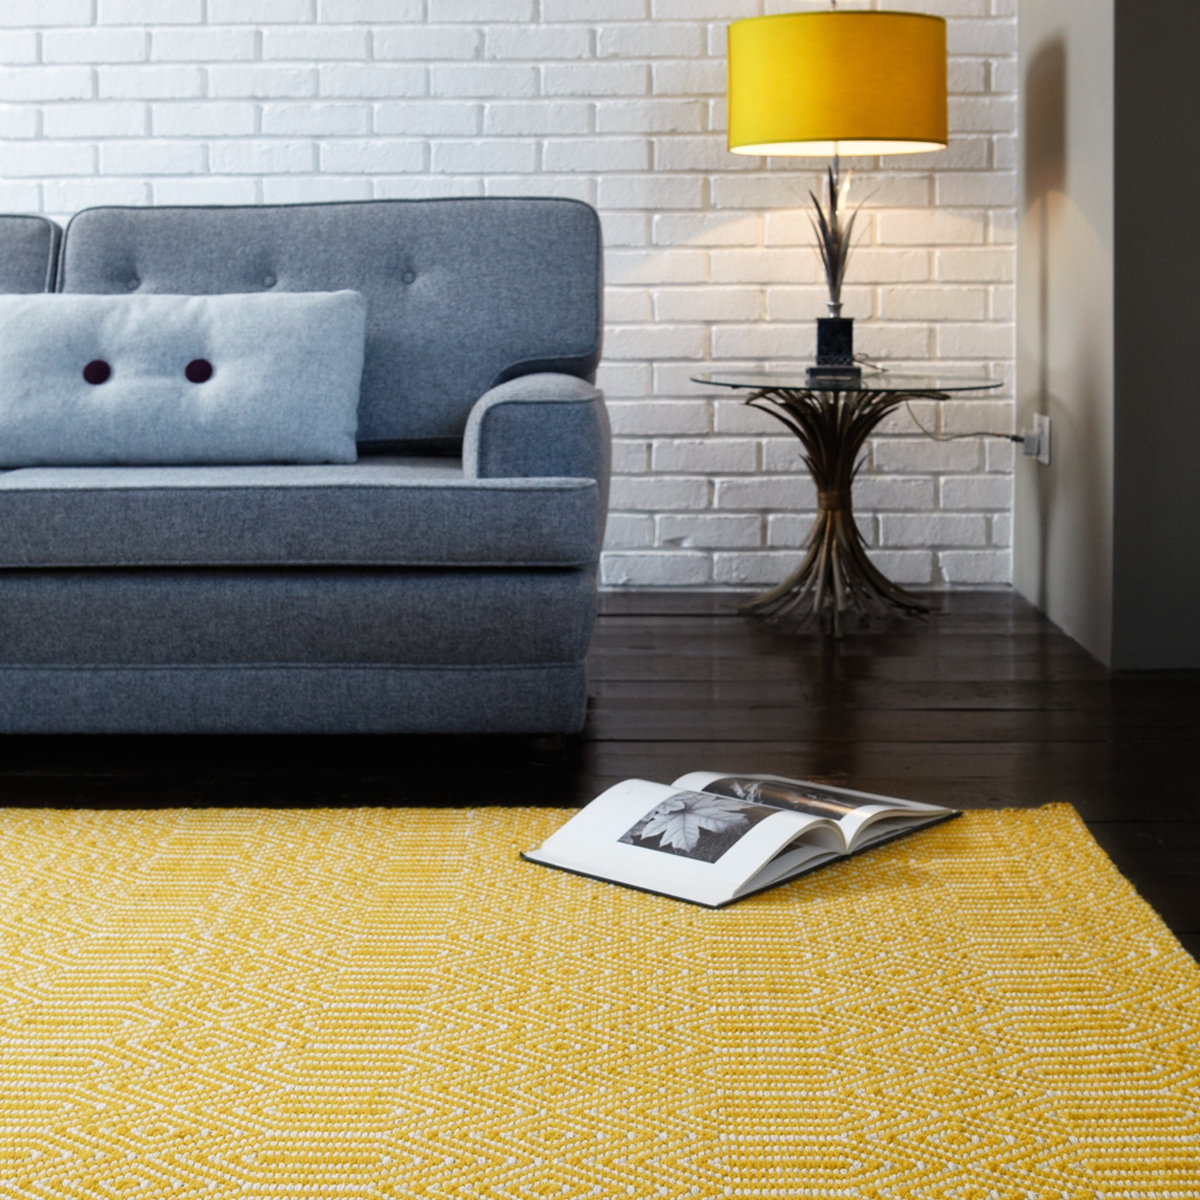 Tapis Salon Jaune Stunning Tapis De Salon Jaune Photos Awesome Interior